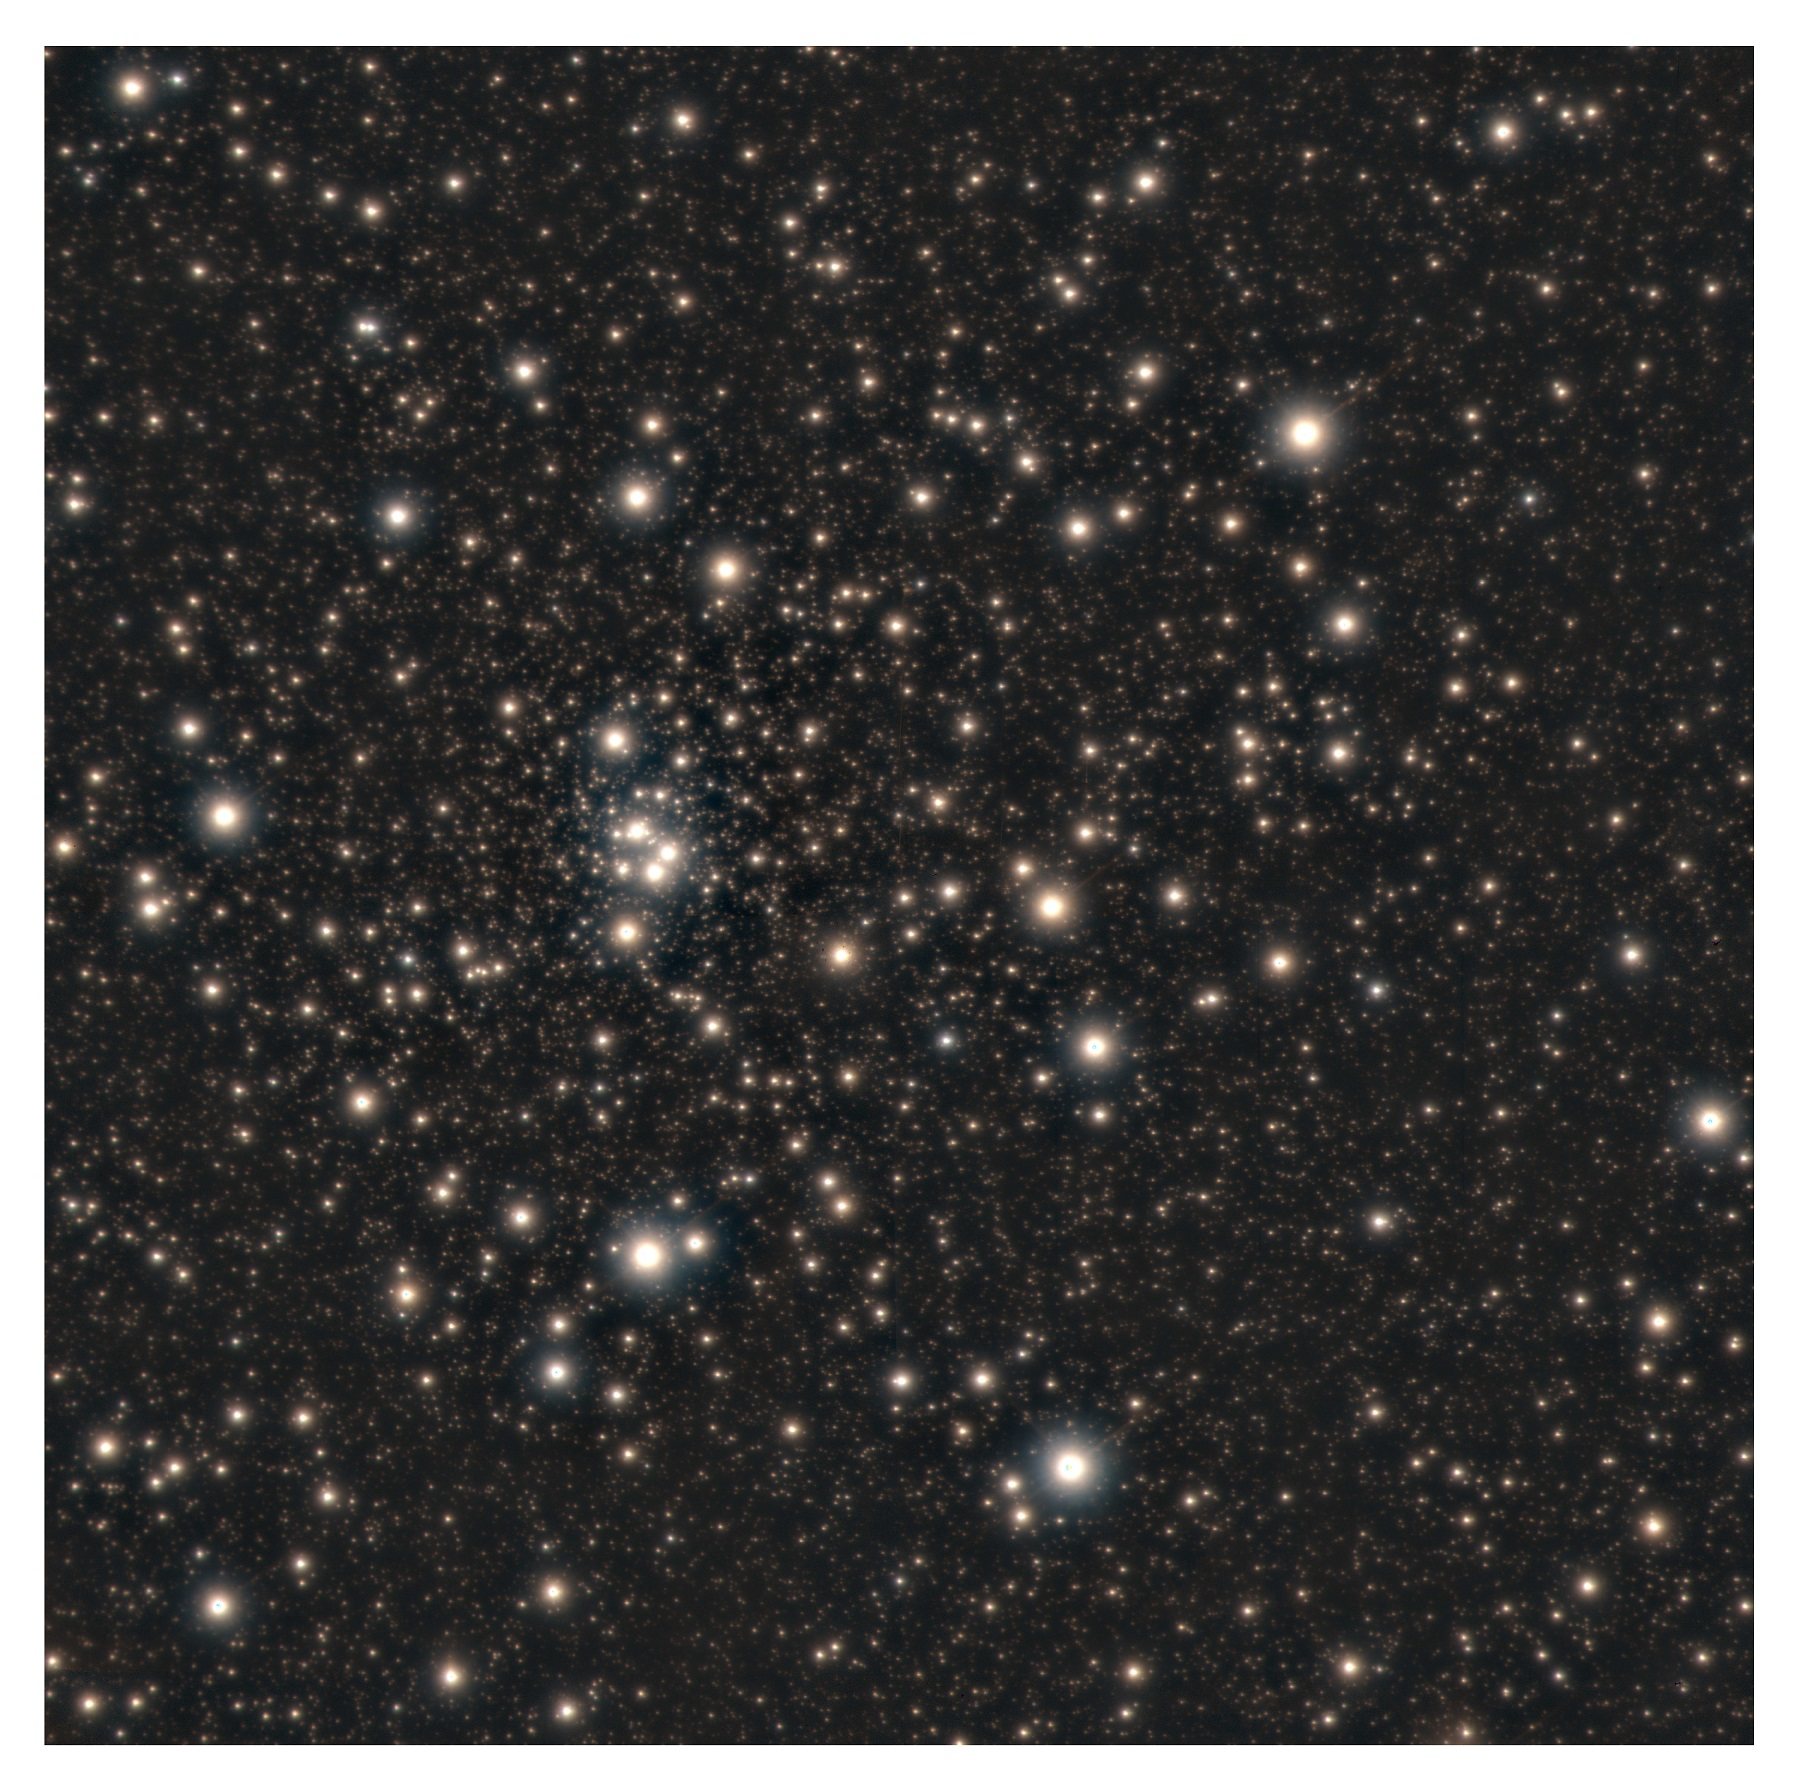 star cluster HP 1, near the center of the Milky Way